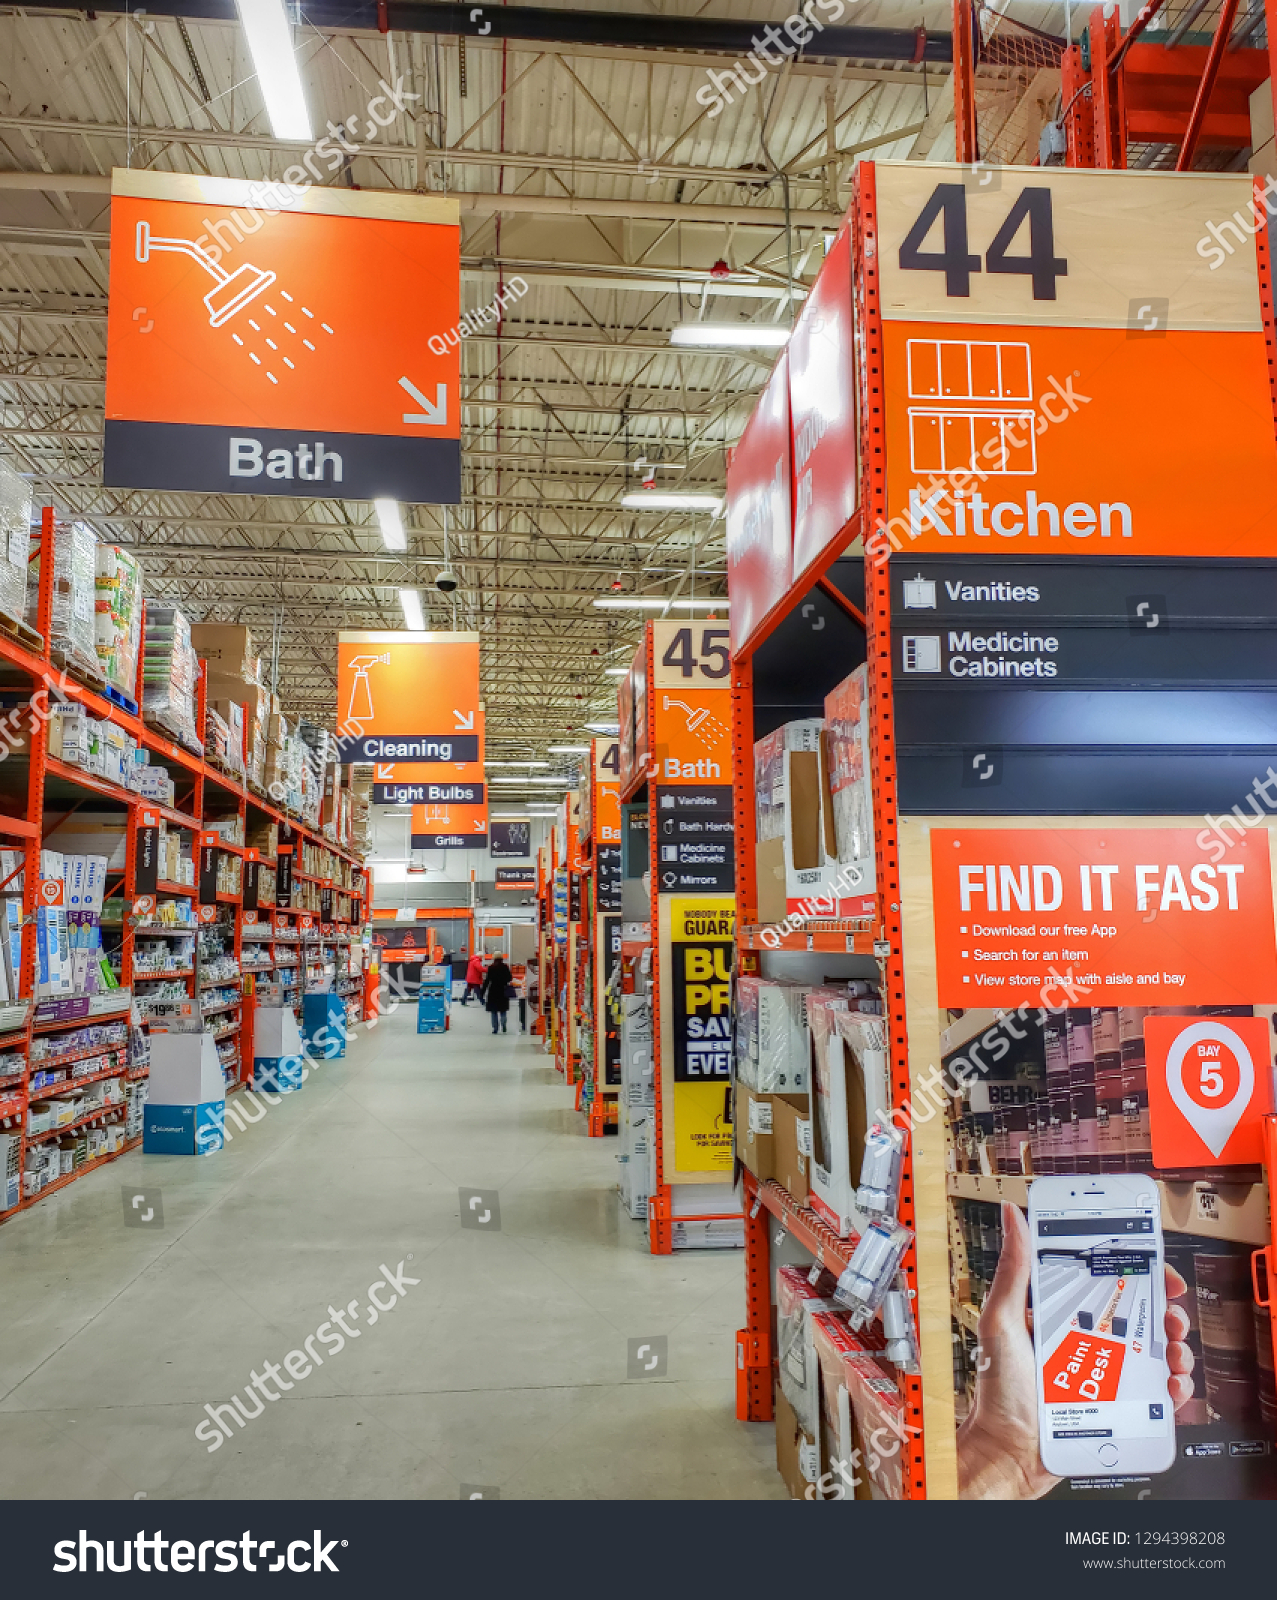 Home Depot Smartphone App Finds Store Stock Photo (Edit Now ...